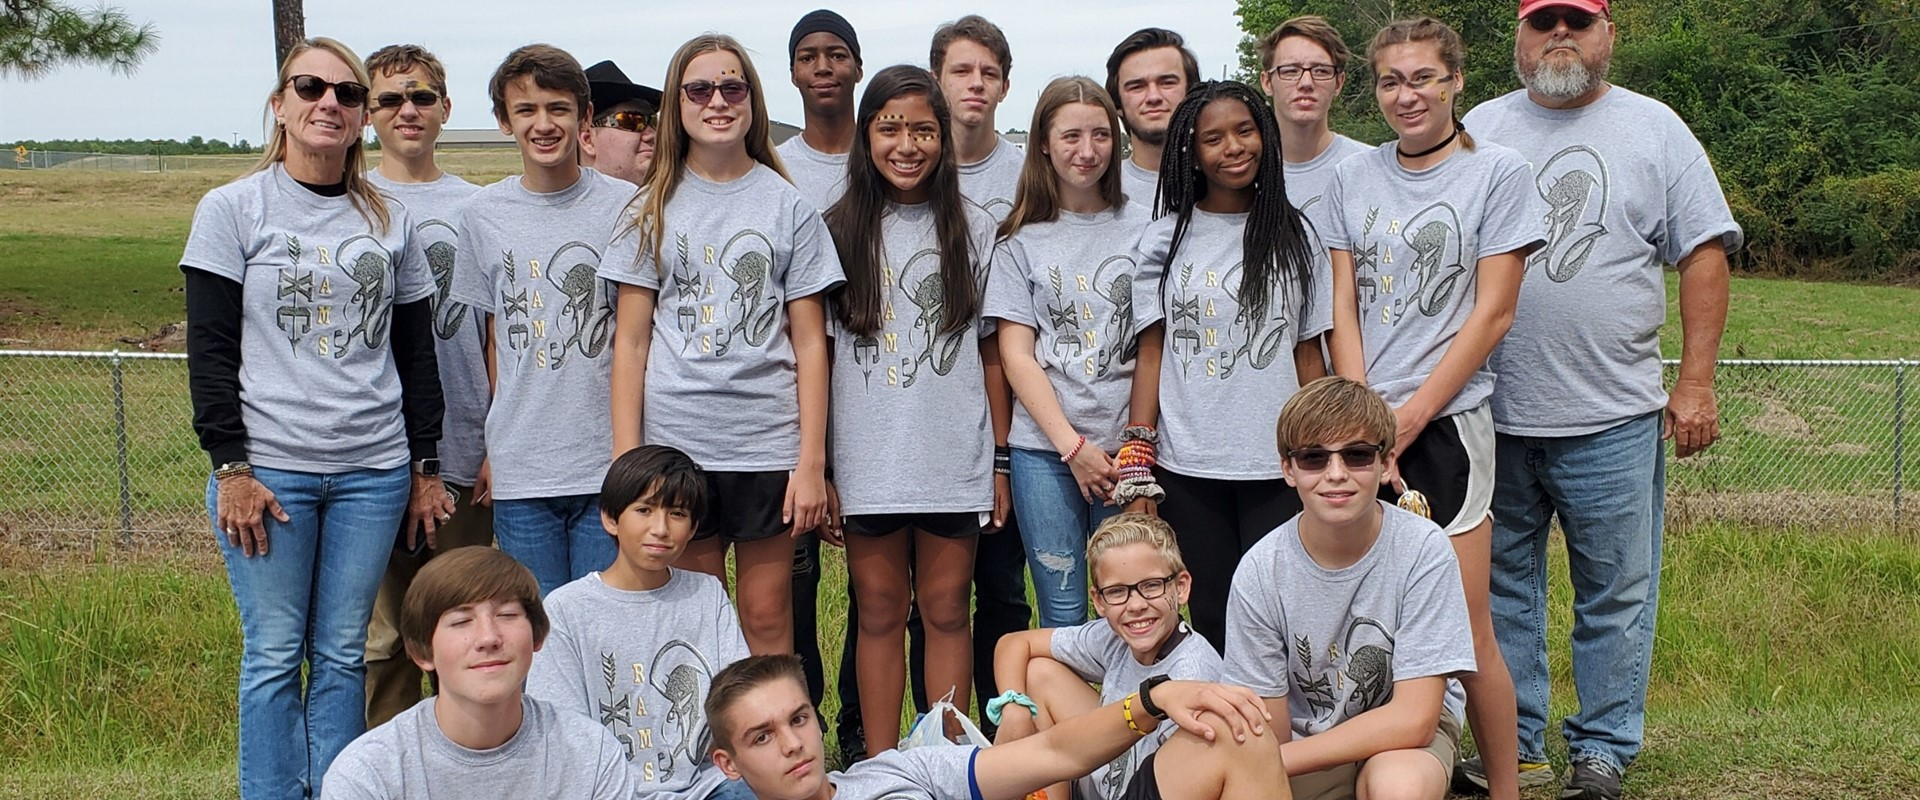 WCMS/WCHS Cross Country